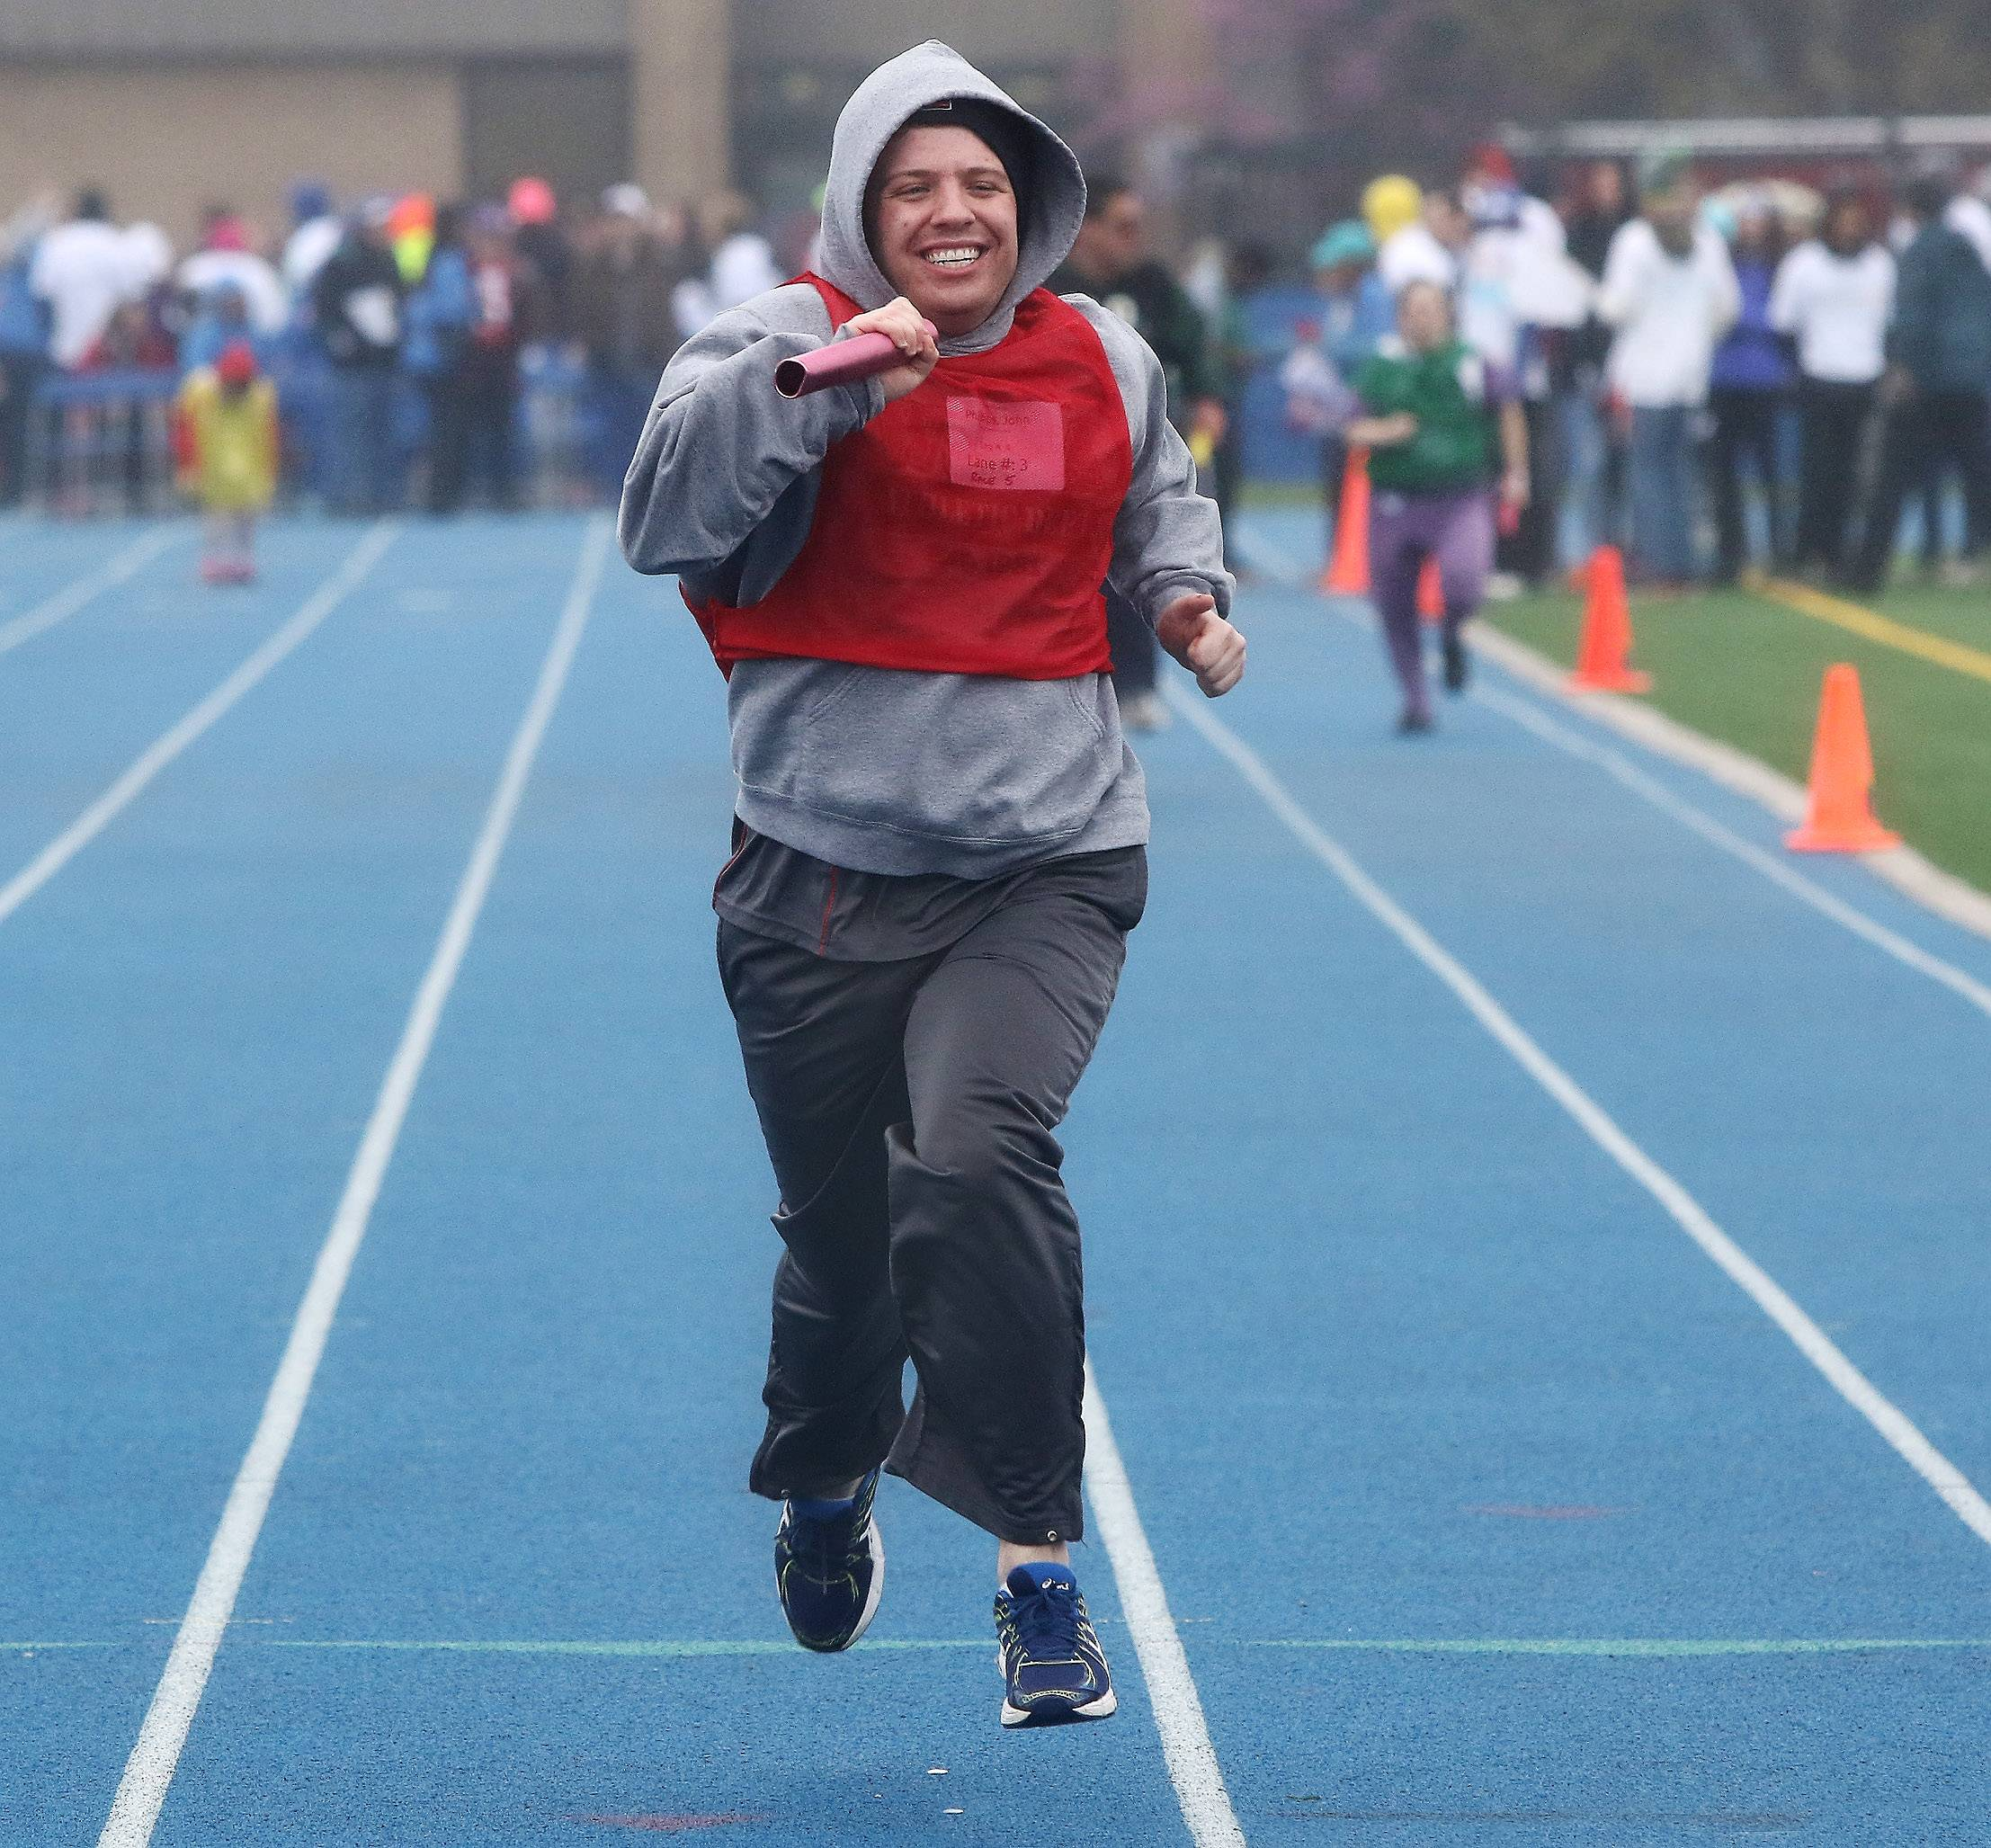 John Phillips, of Warren SRA is all smiles as he crosses the finish line after competing in the 4x100 meter relay during the annual Spring Games of Special Olympics Illinois Northeastern/Area 13 on Sunday at Lake Zurich High School. As a light drizzle fell on the field, Special Olympics athletes competed in races on the wet track.